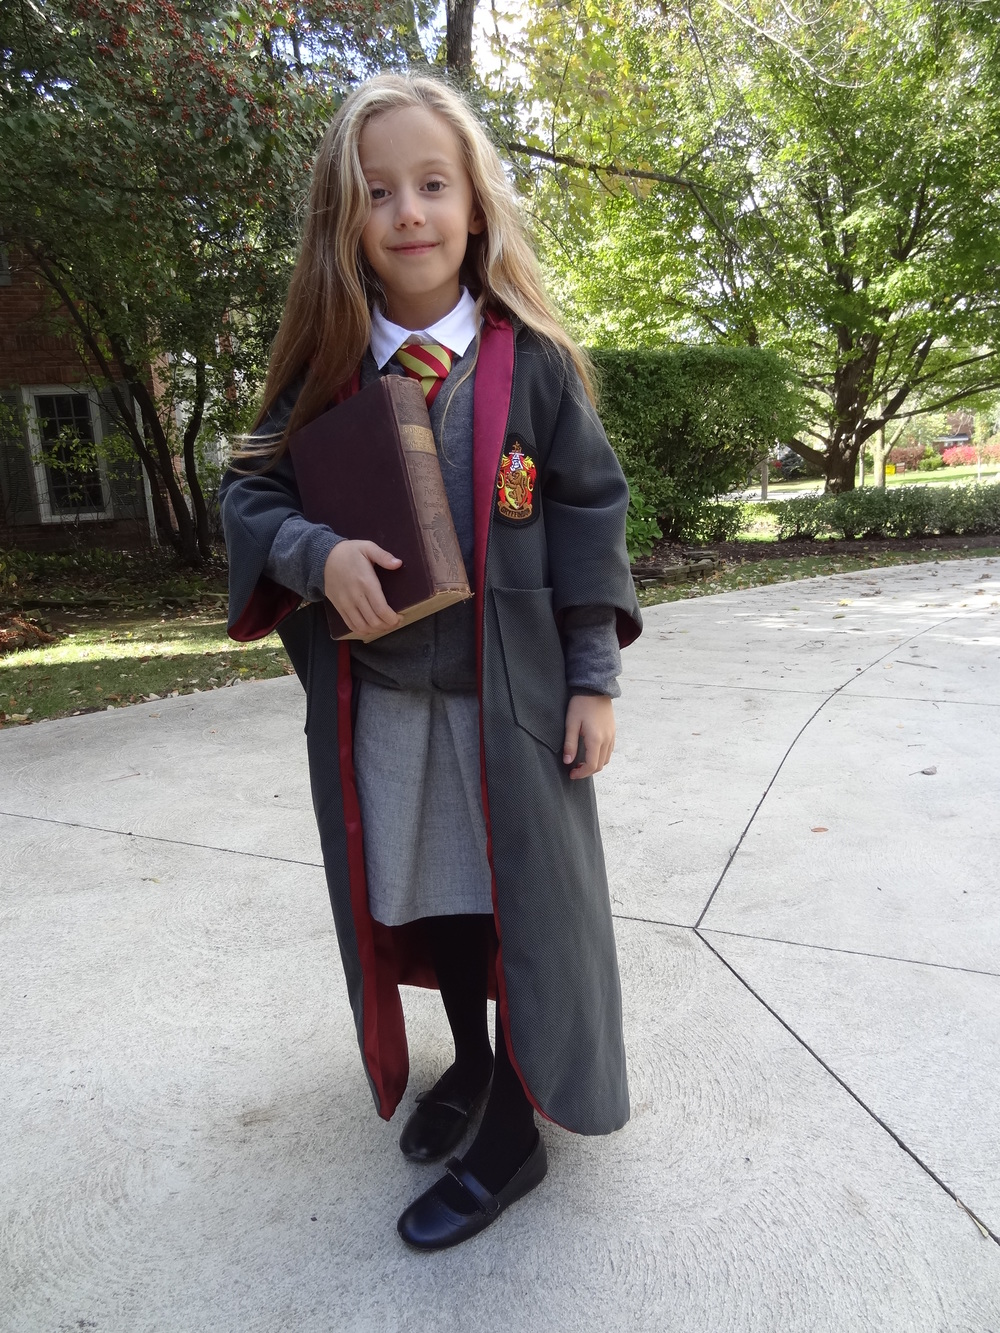 Halloween is nearly upon us and with a second grader fully entrenched in the Harry Potter series, I needed to figure out a Hermione Granger halloween costume ASAP.